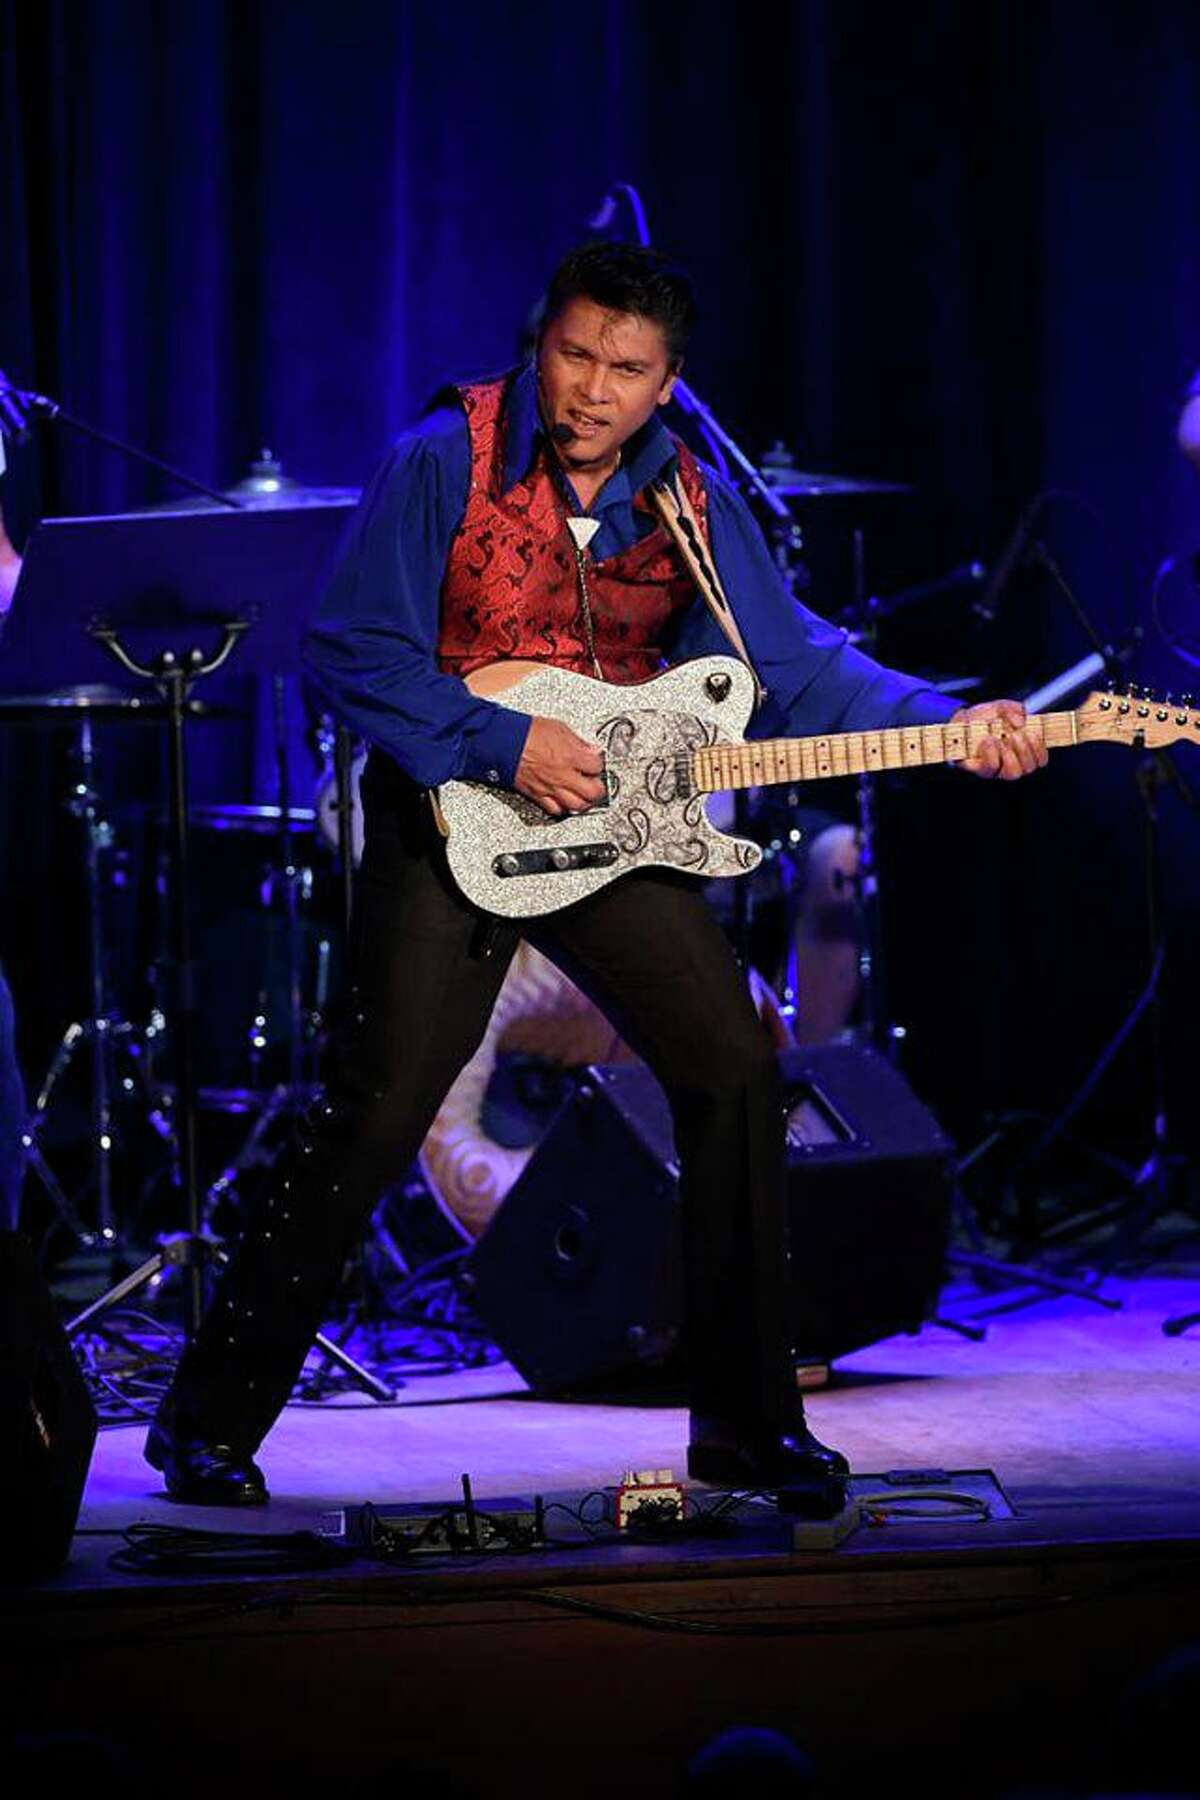 """A Las Vegas legend """"Sting Ray Anthony"""" will perform for the first time at the Huntsville Old Town Theatre on Friday, Aug. 27."""